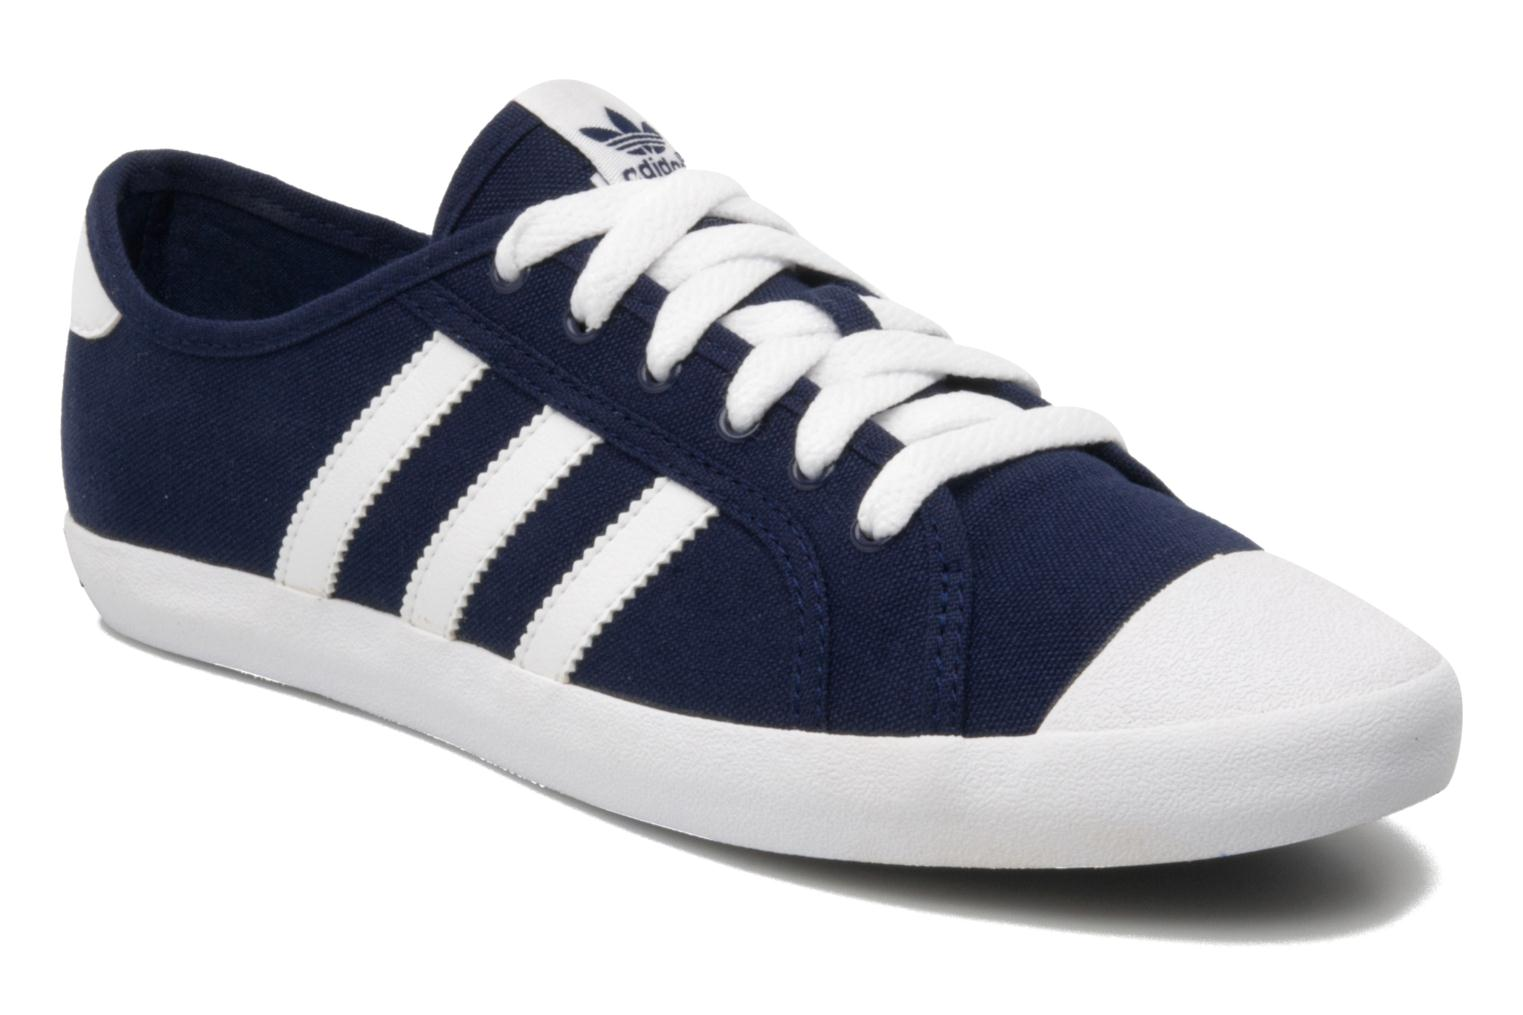 chaussure adidas adria low femme